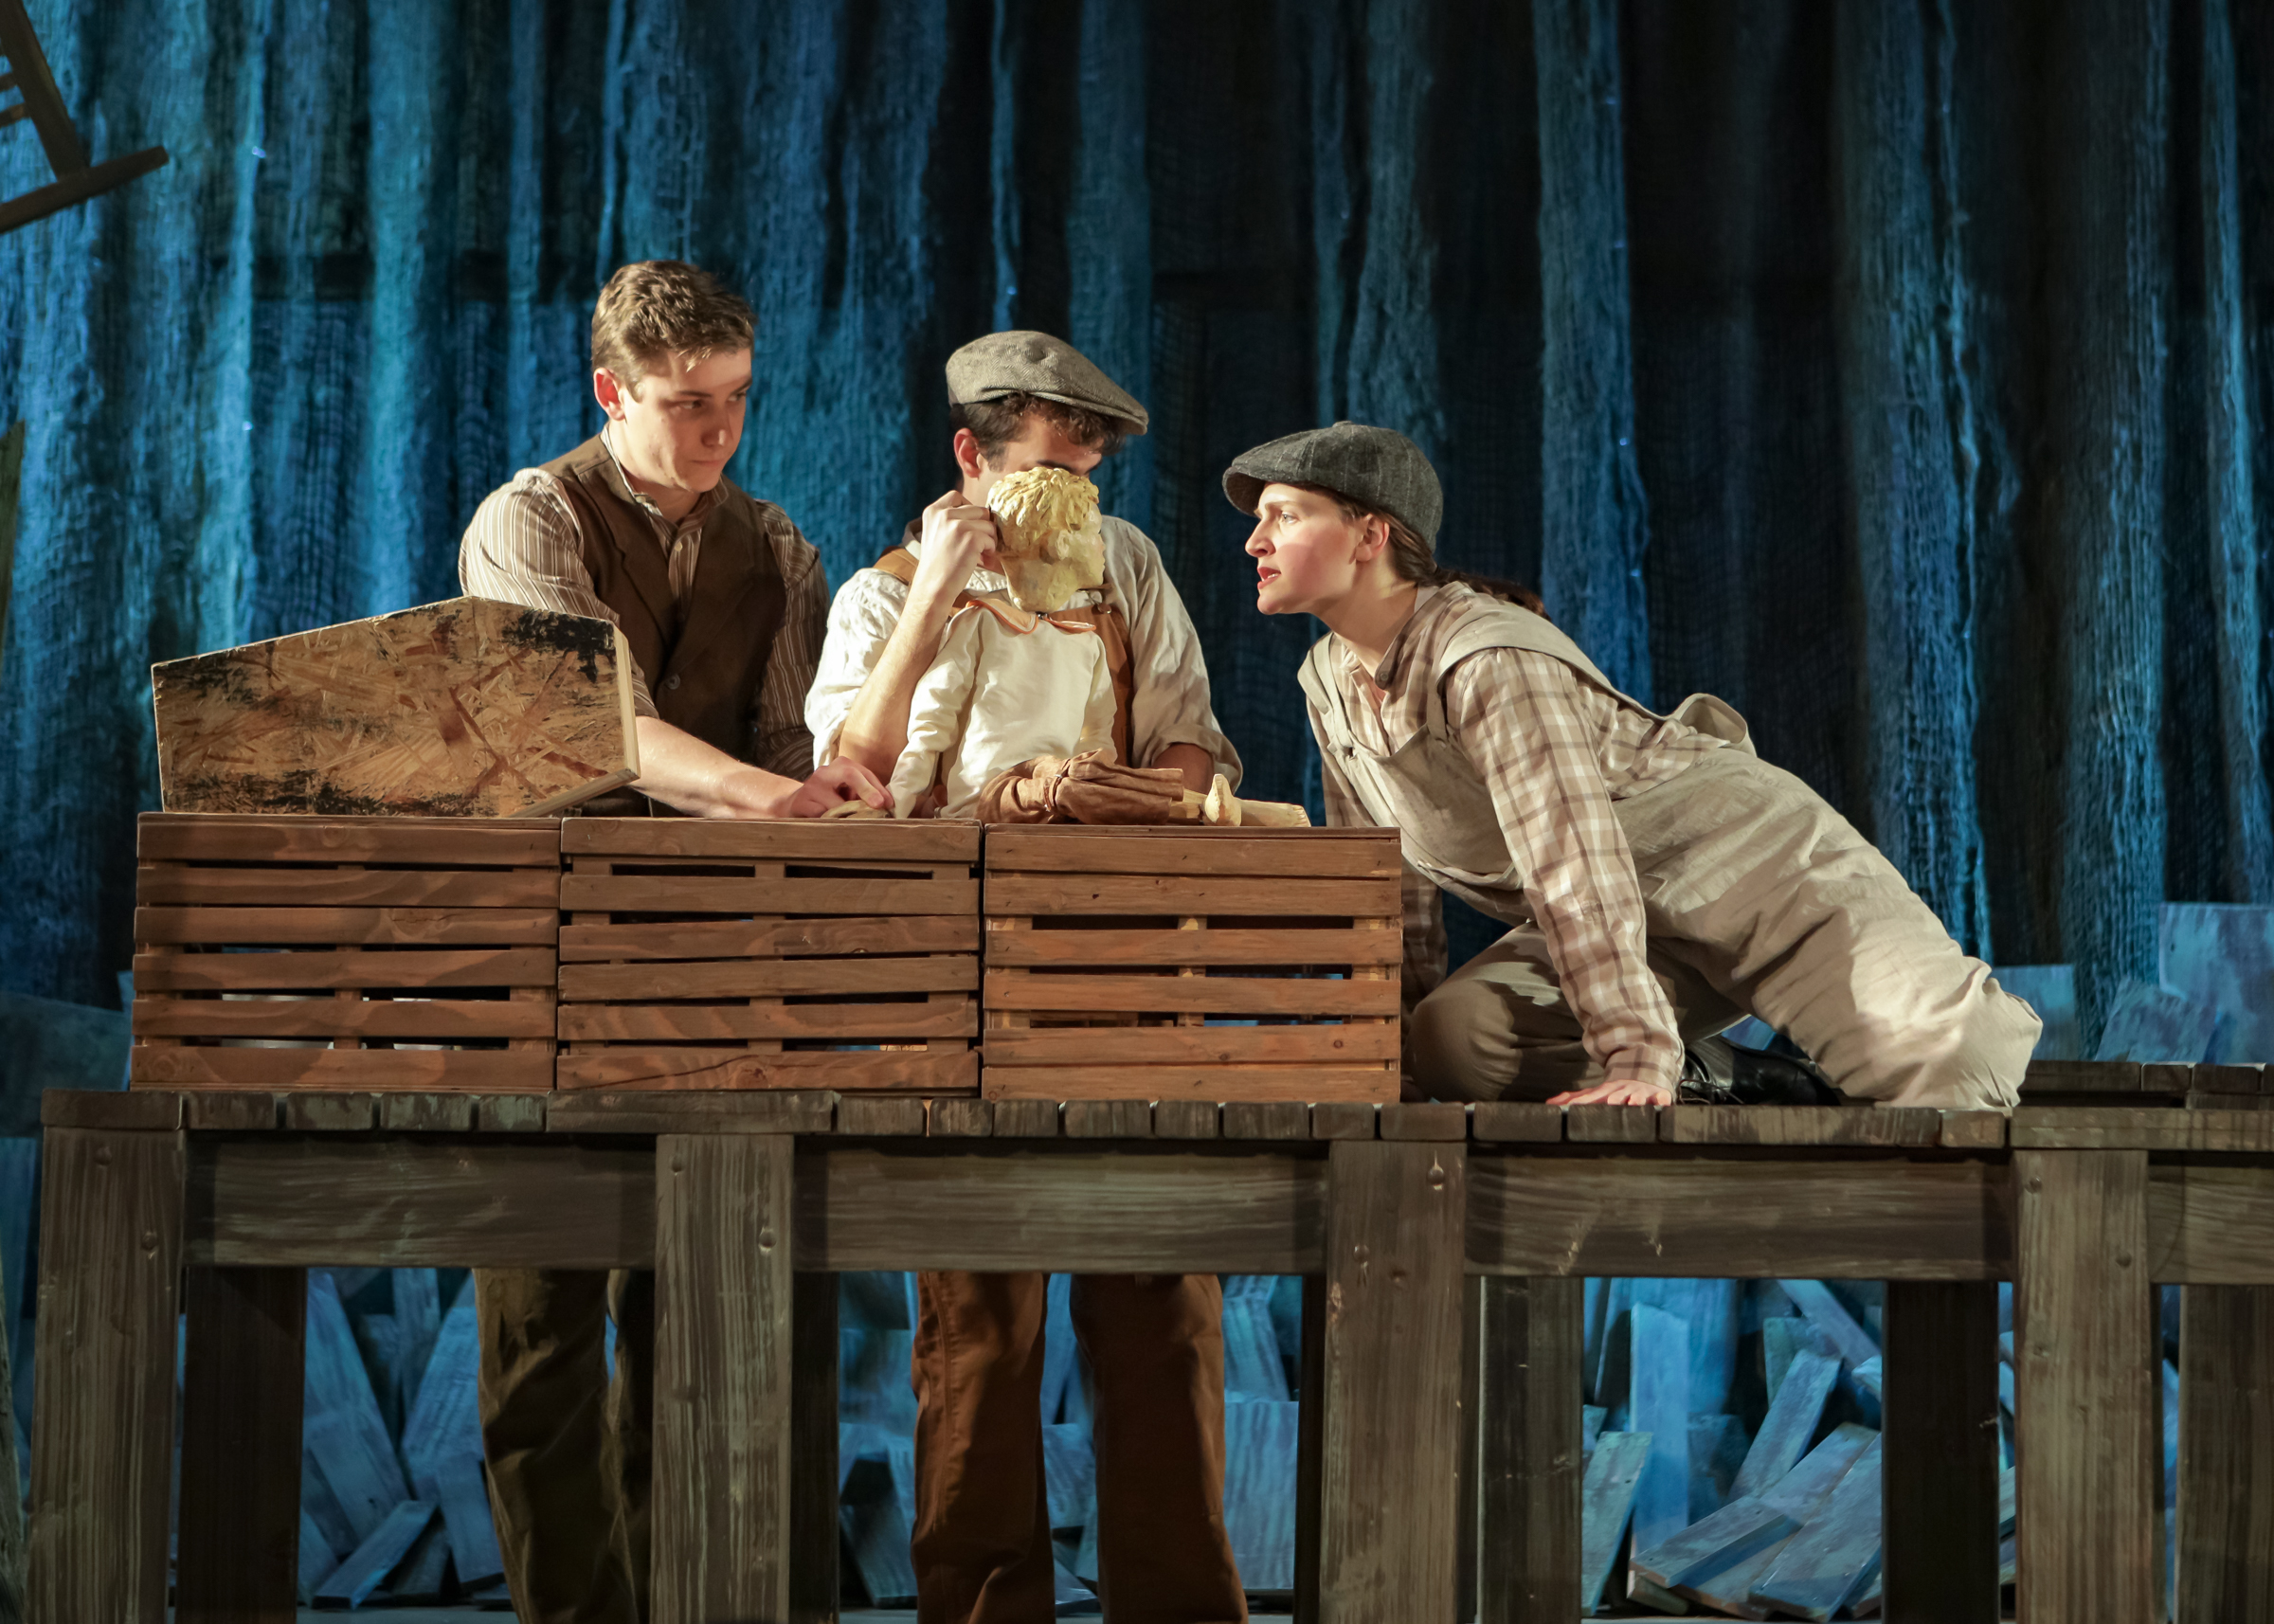 Ann Fogler as Brother, Scott Ballantine as Father, and Lucas Coura as Doodle in  The Scarlet Ibis .  Boston Opera Collaborative; January 2019.  Photo Credit: Dan Busler